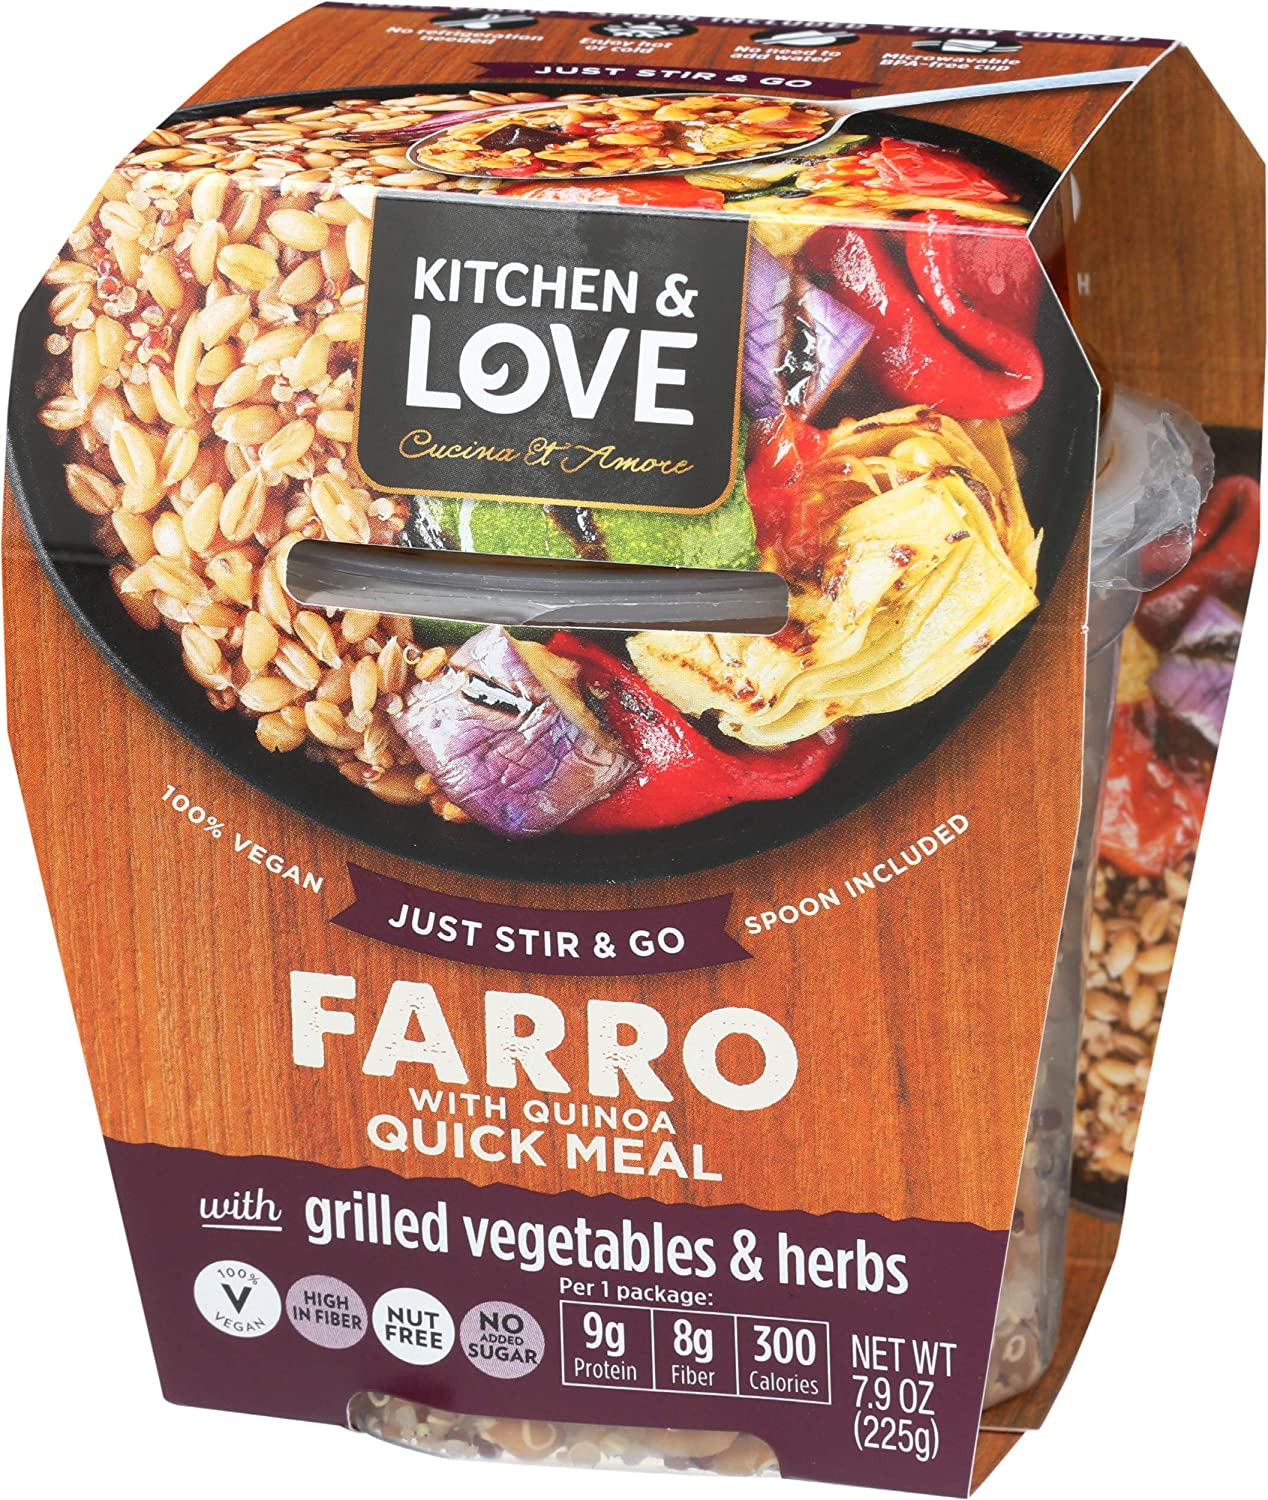 Kitchen Love Grilled Vegetables sale Herbs Farro Rare Ve Meal 6-Pack